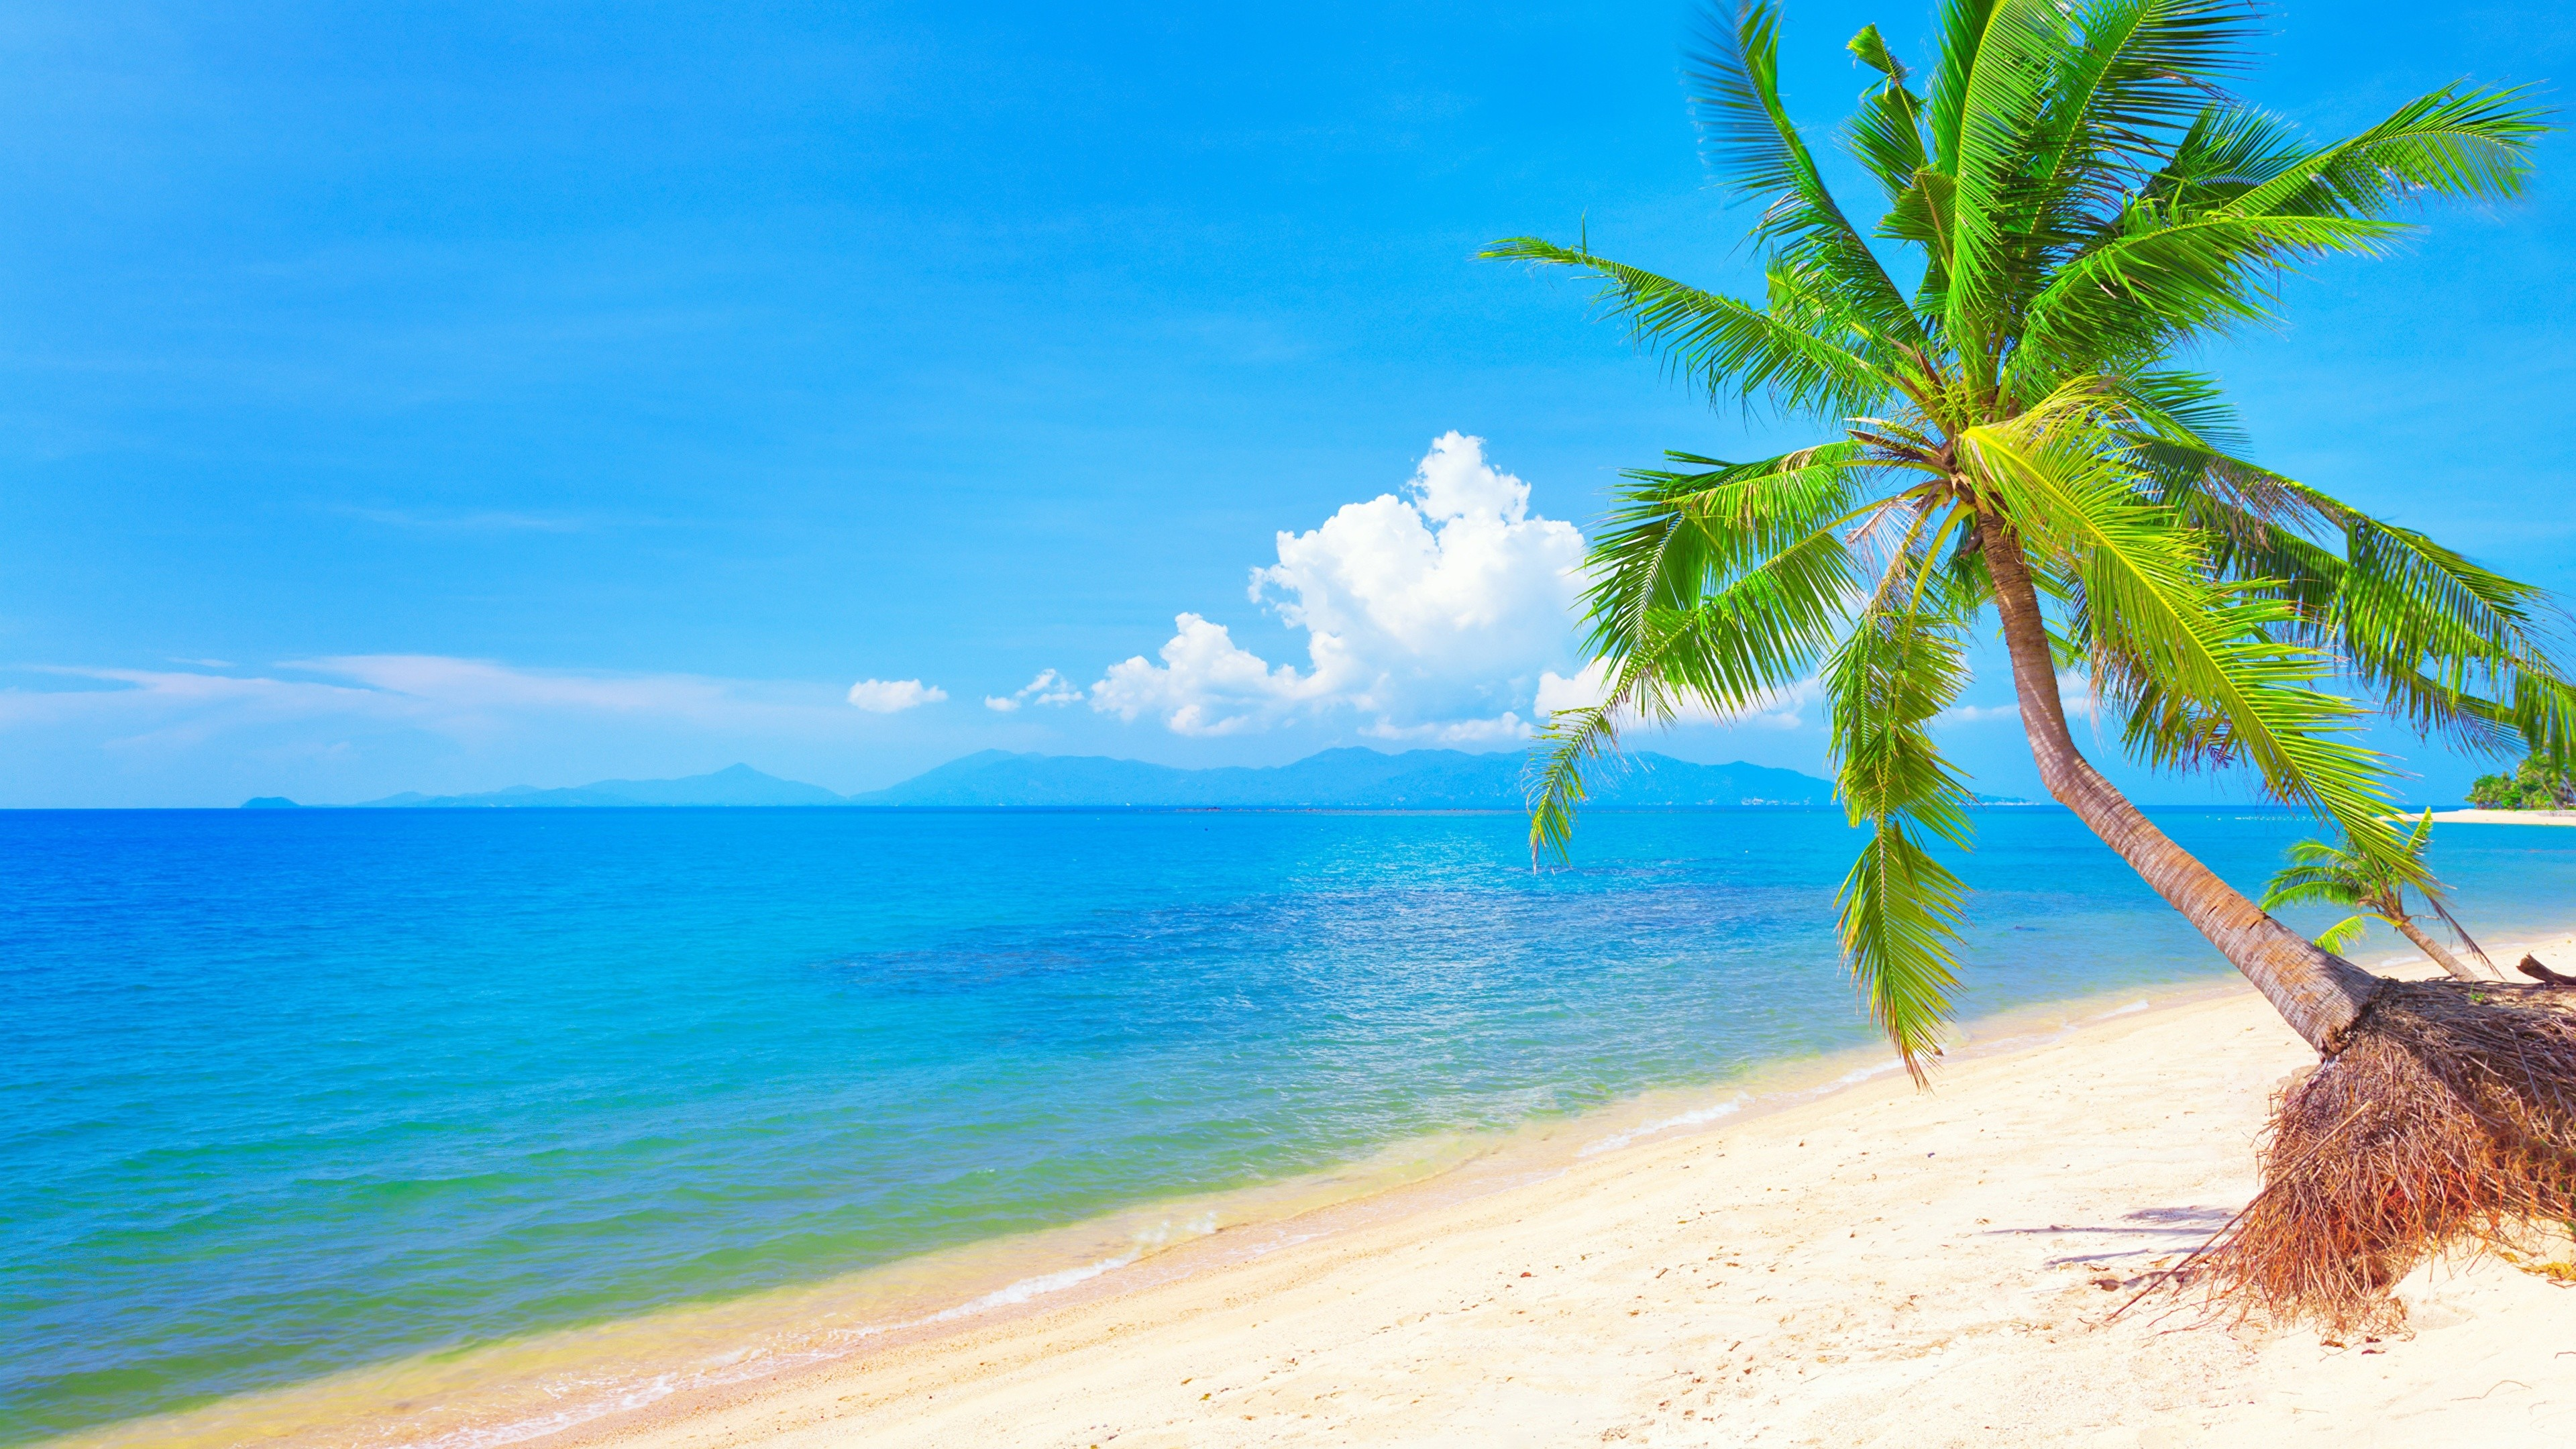 3840x2160 Palm Tree, Shore, Vacation, Accommodation, Caribbean Wallpaper in   Resolution